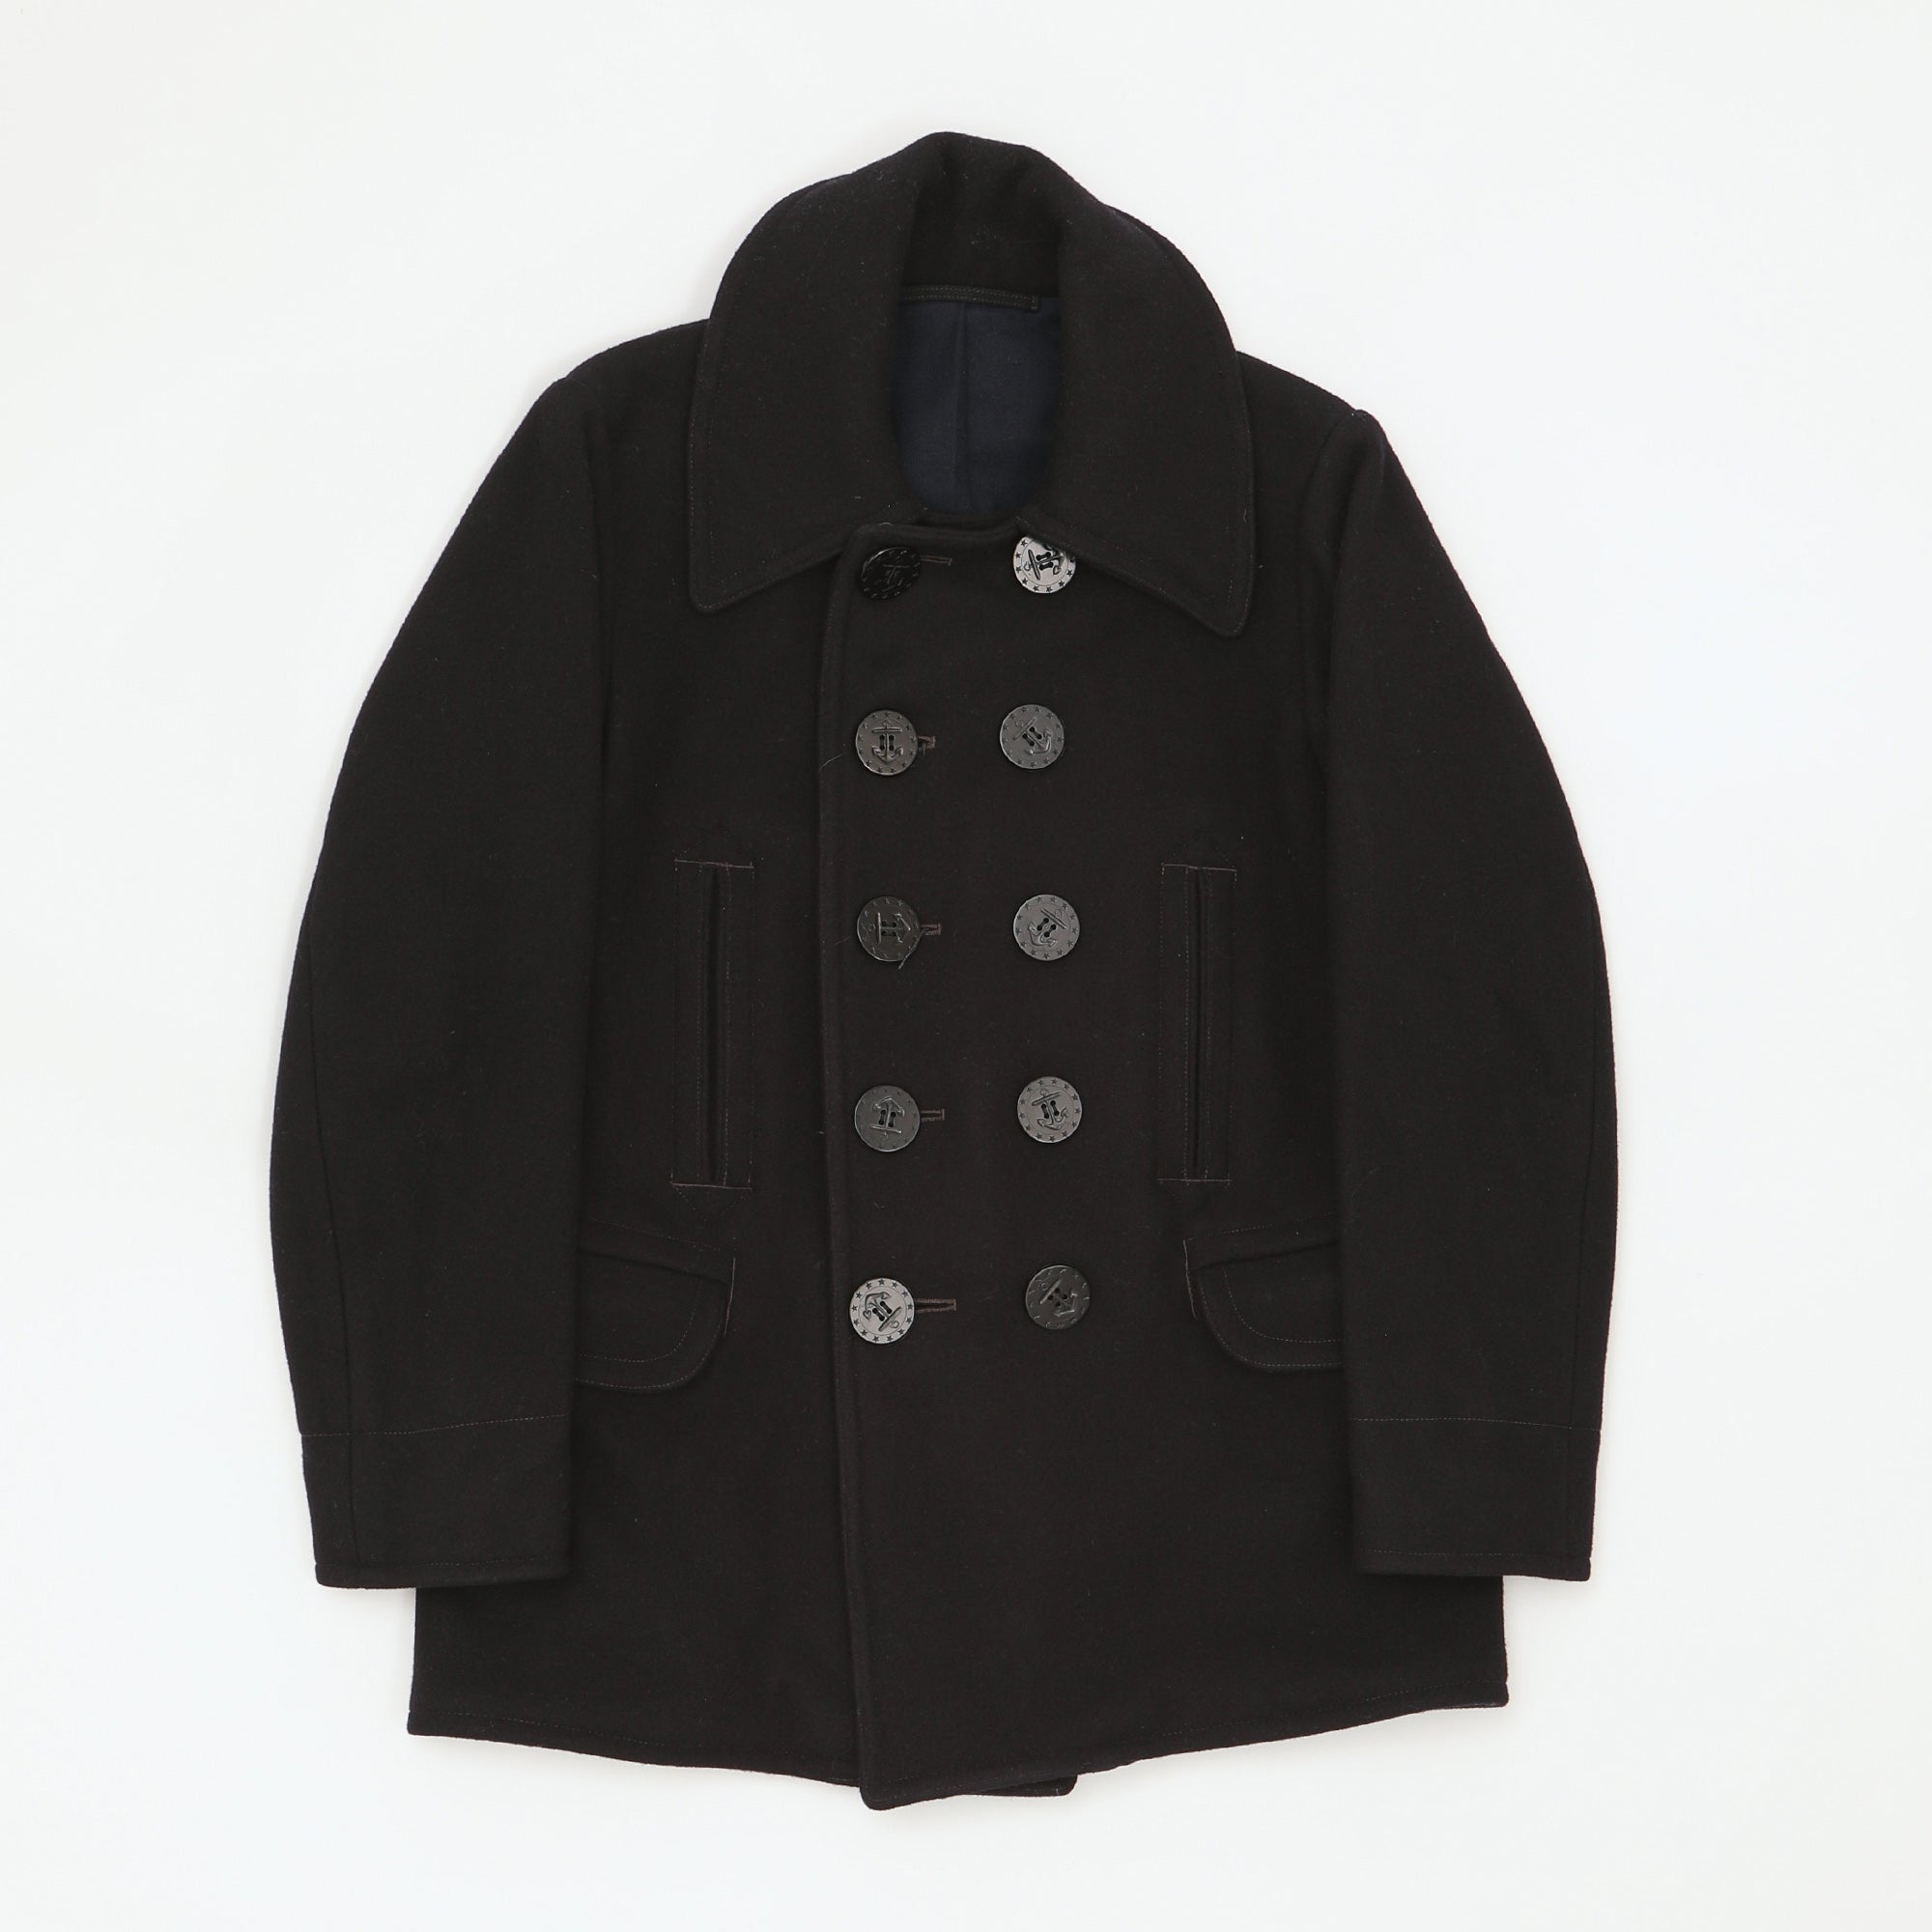 U.S Navy Pea Coat